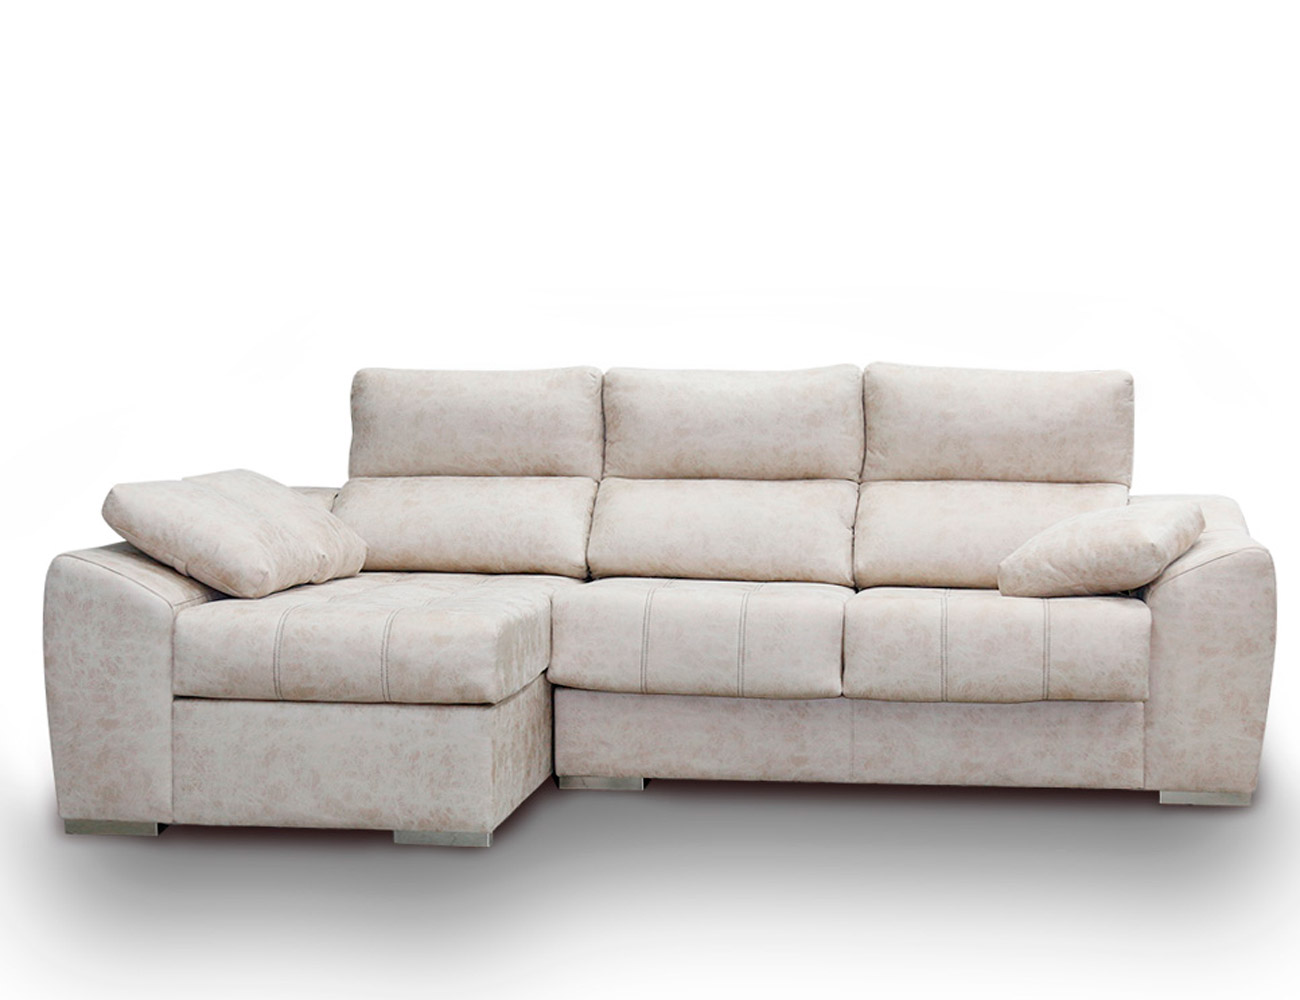 Sofa chaiselongue anti manchas beig blanco17